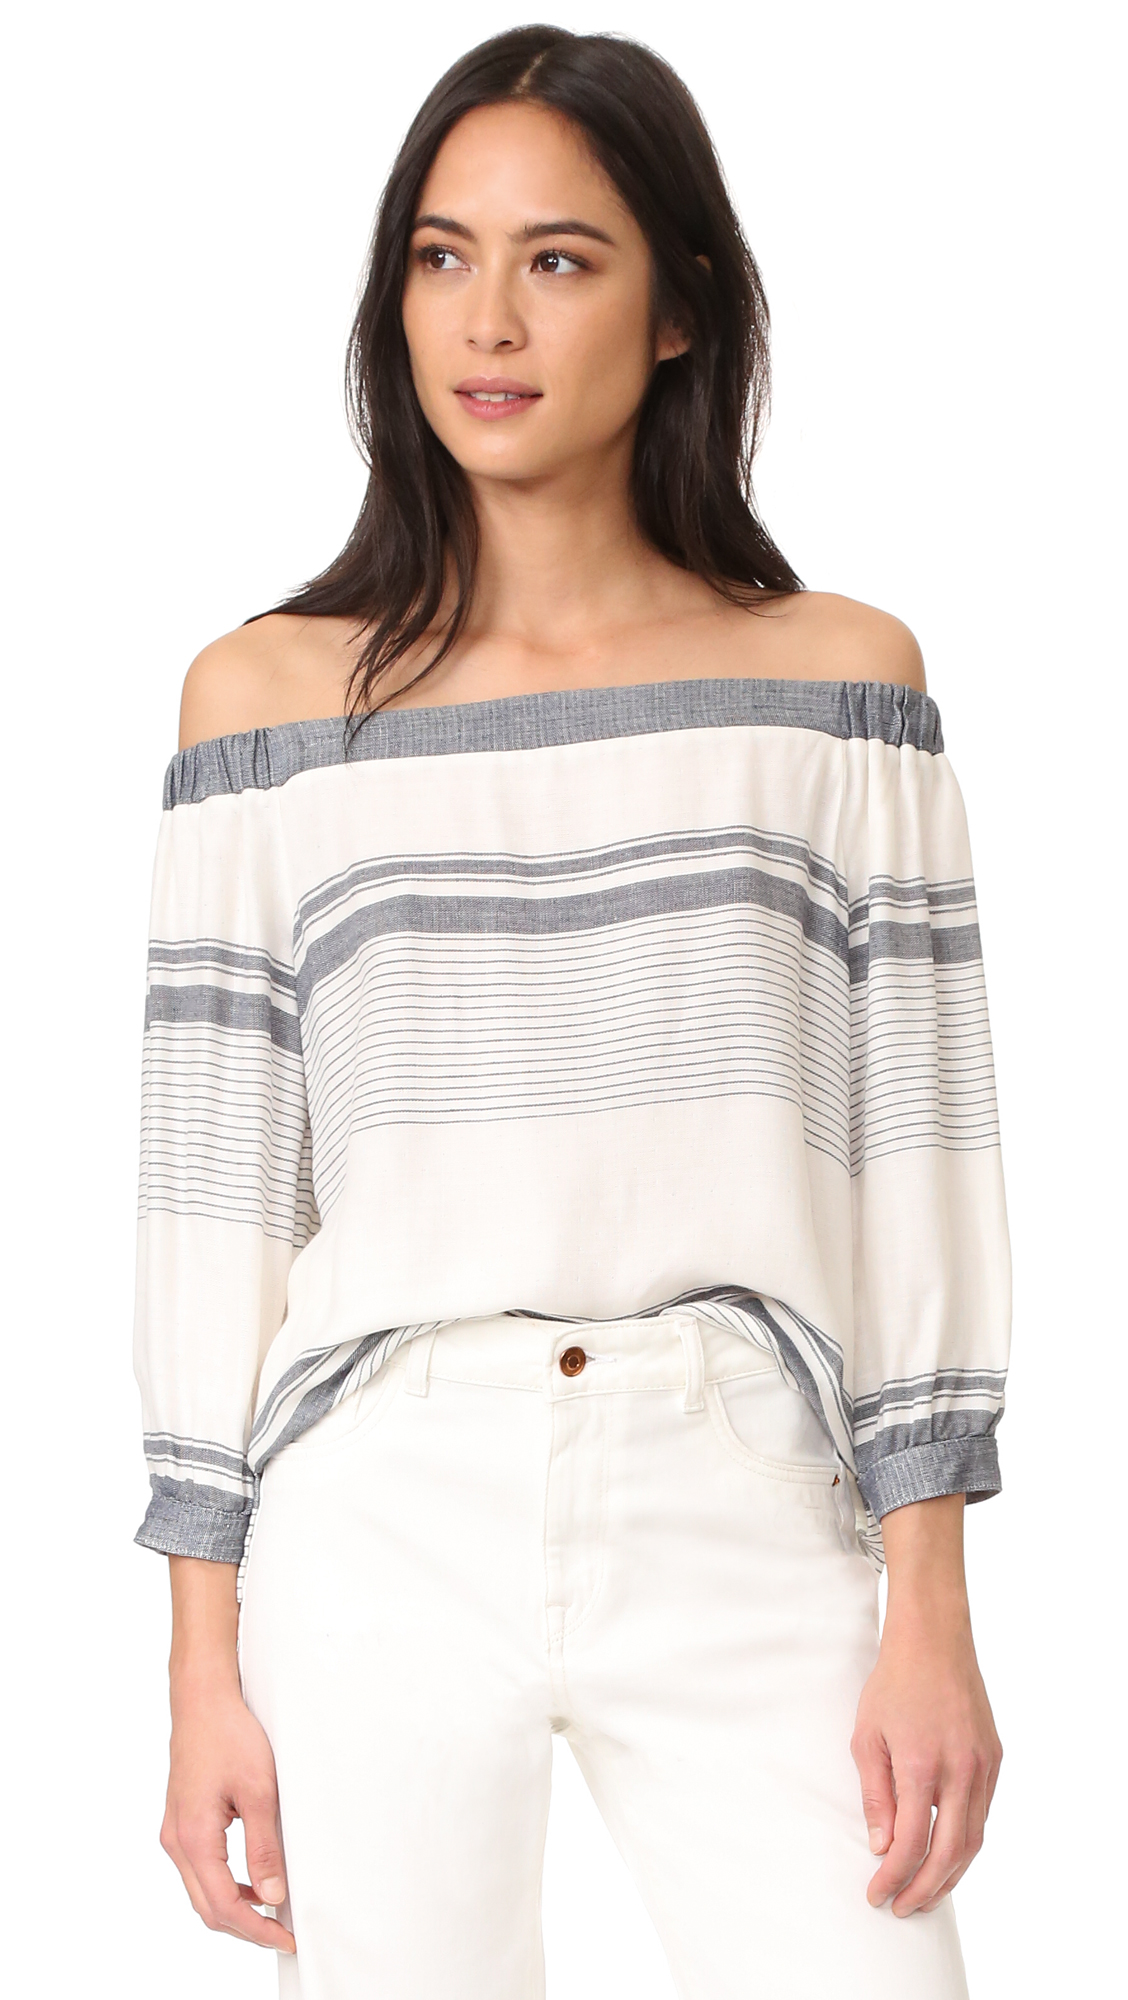 An off shoulder Maven West top crafted in a soft, slinky weave. Covered elastic cinches the shoulders. Long sleeves and single button cuffs. Fabric: Slinky weave. 100% rayon. Dry clean. Made in the USA. Measurements Length: 18.5in / 47